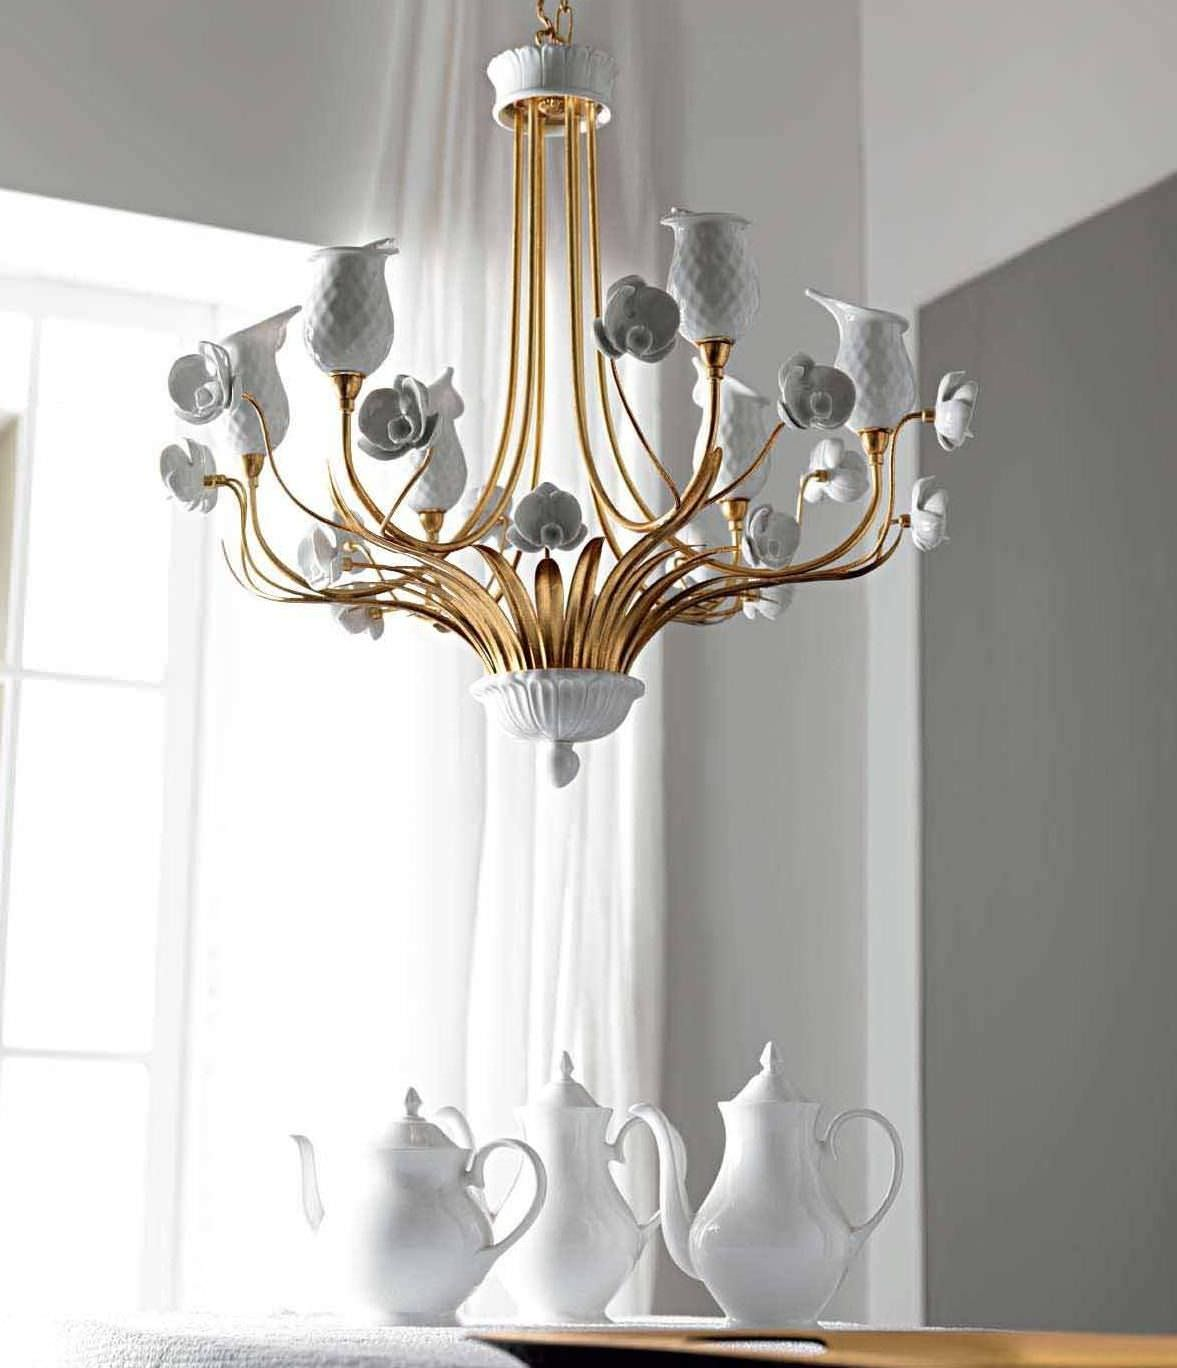 Antique Porcelain Chandeliers Chandelier Designs - Porcelain Chandelier Antique - Chandelier Designs